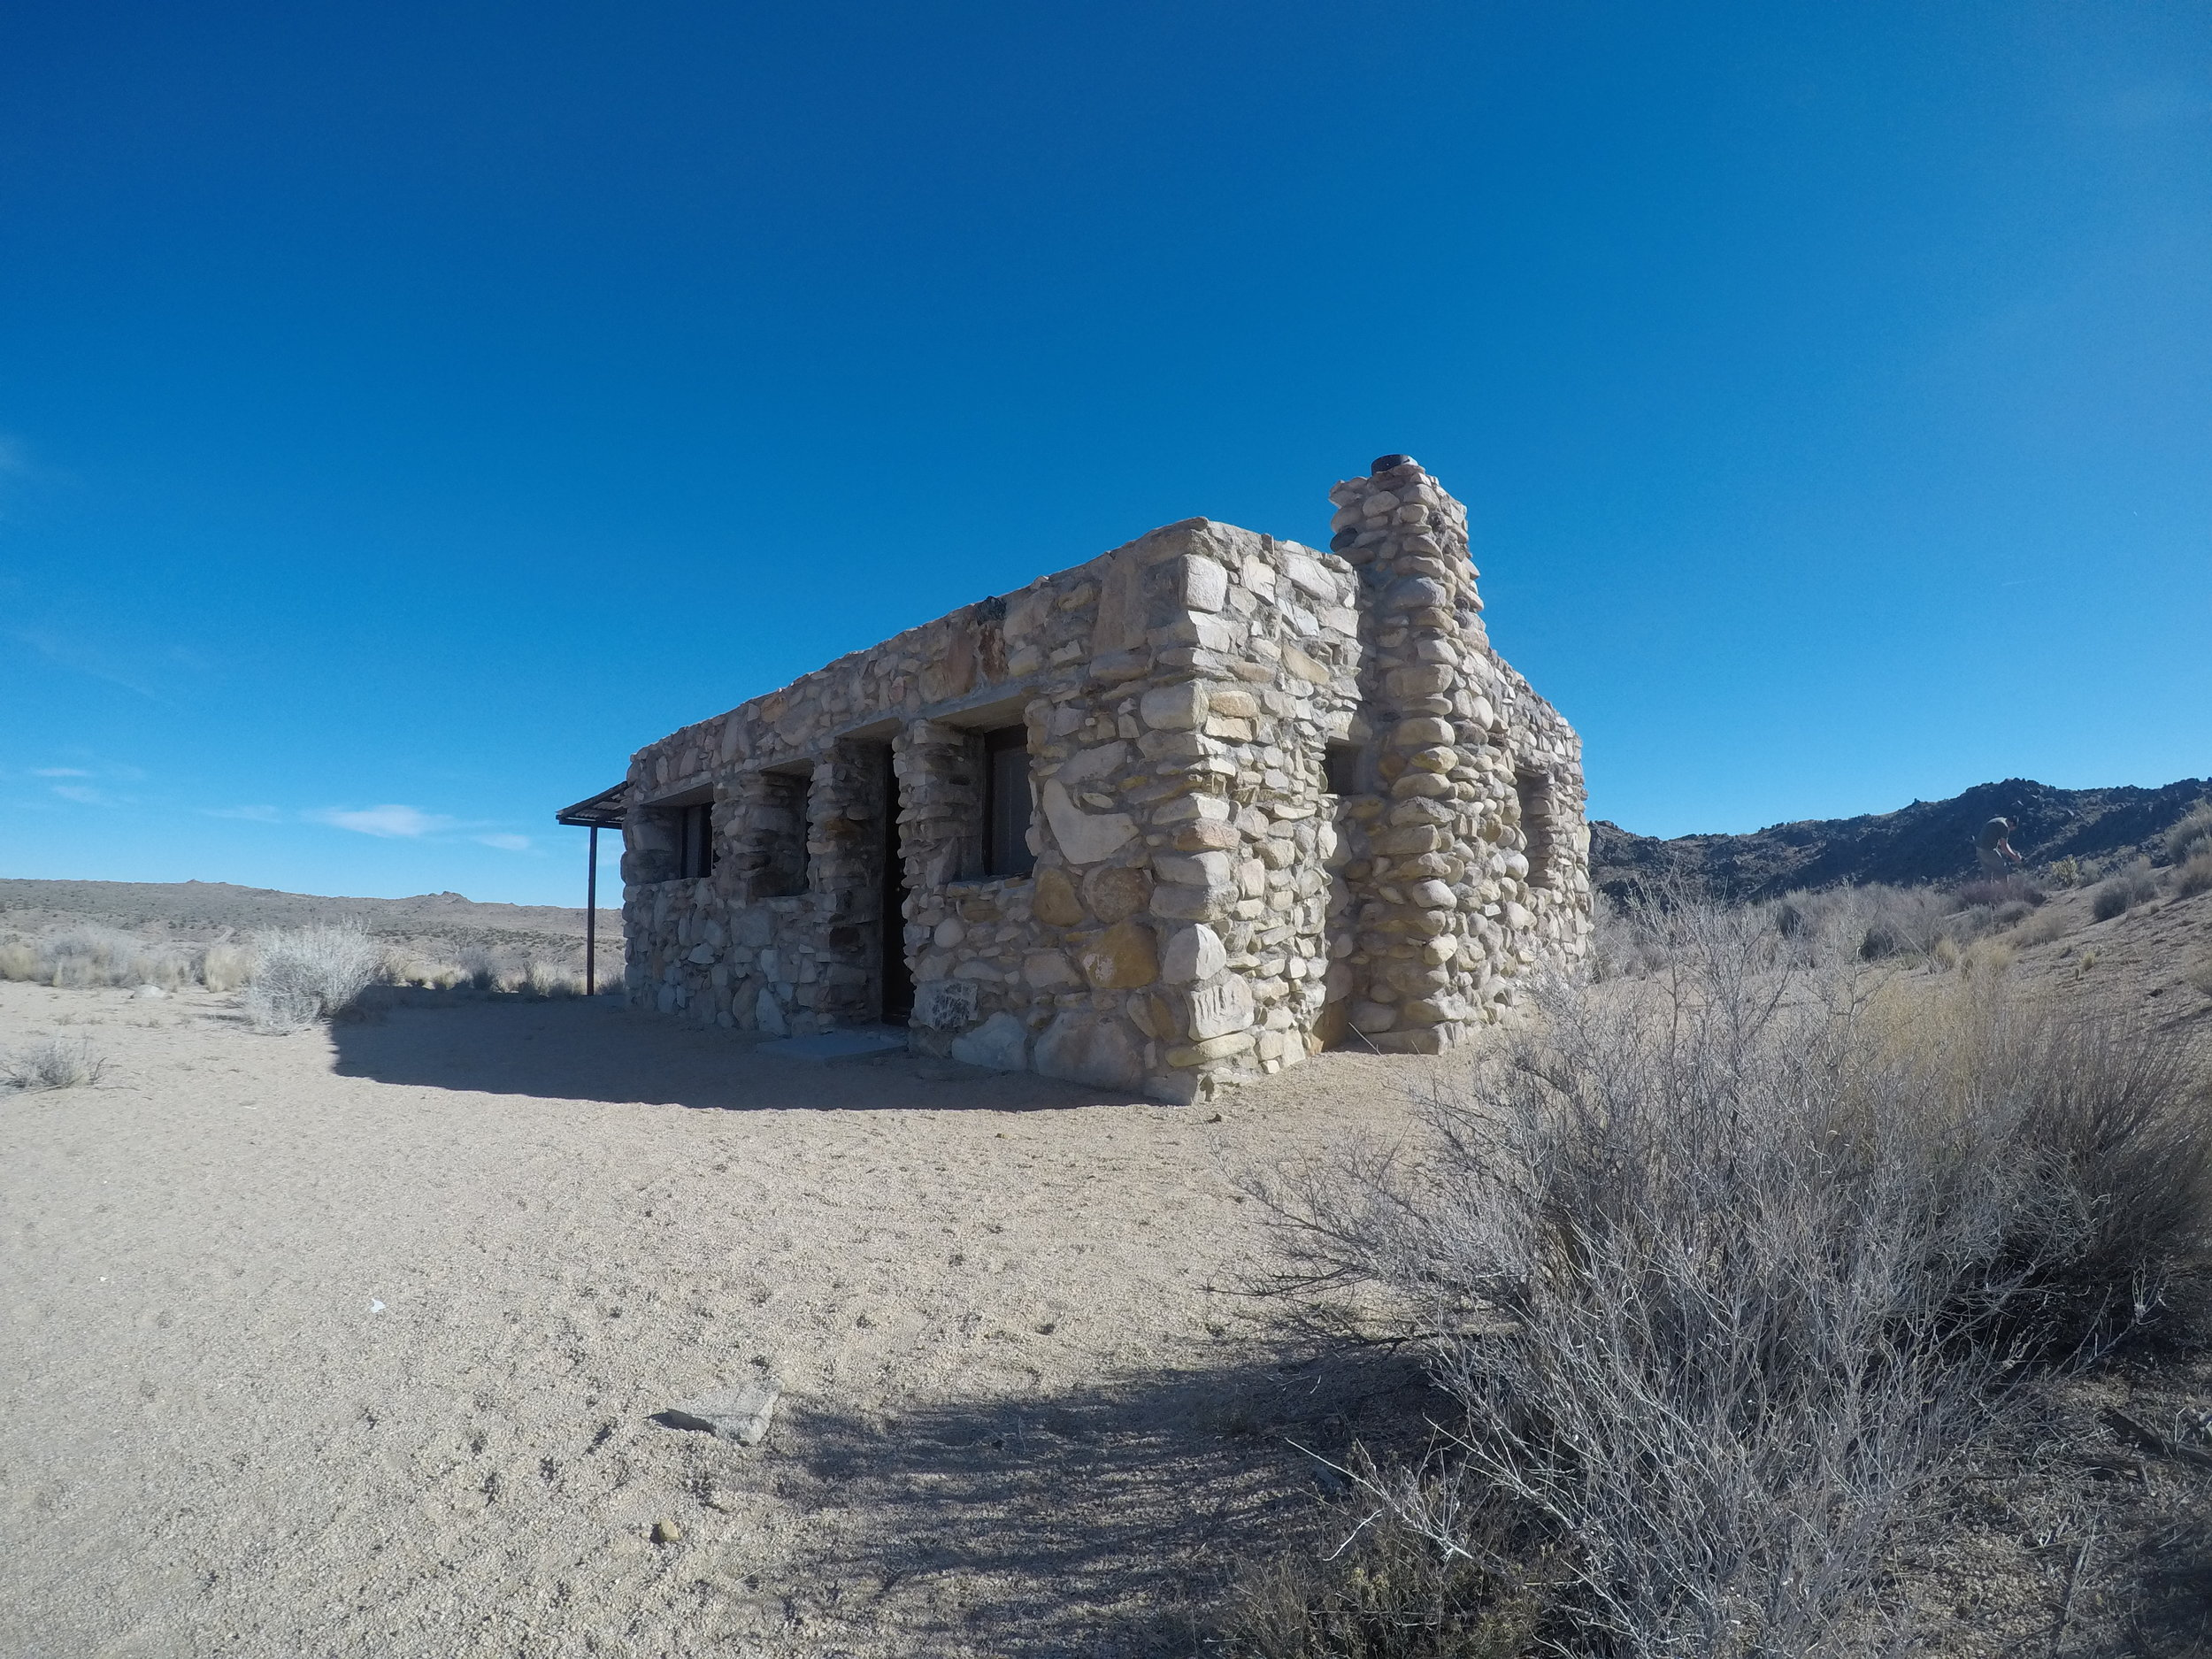 Today the Rock Spring - or Bert Smith Cabin - is a historic curiosity in the middle of the Mojave National Preserve